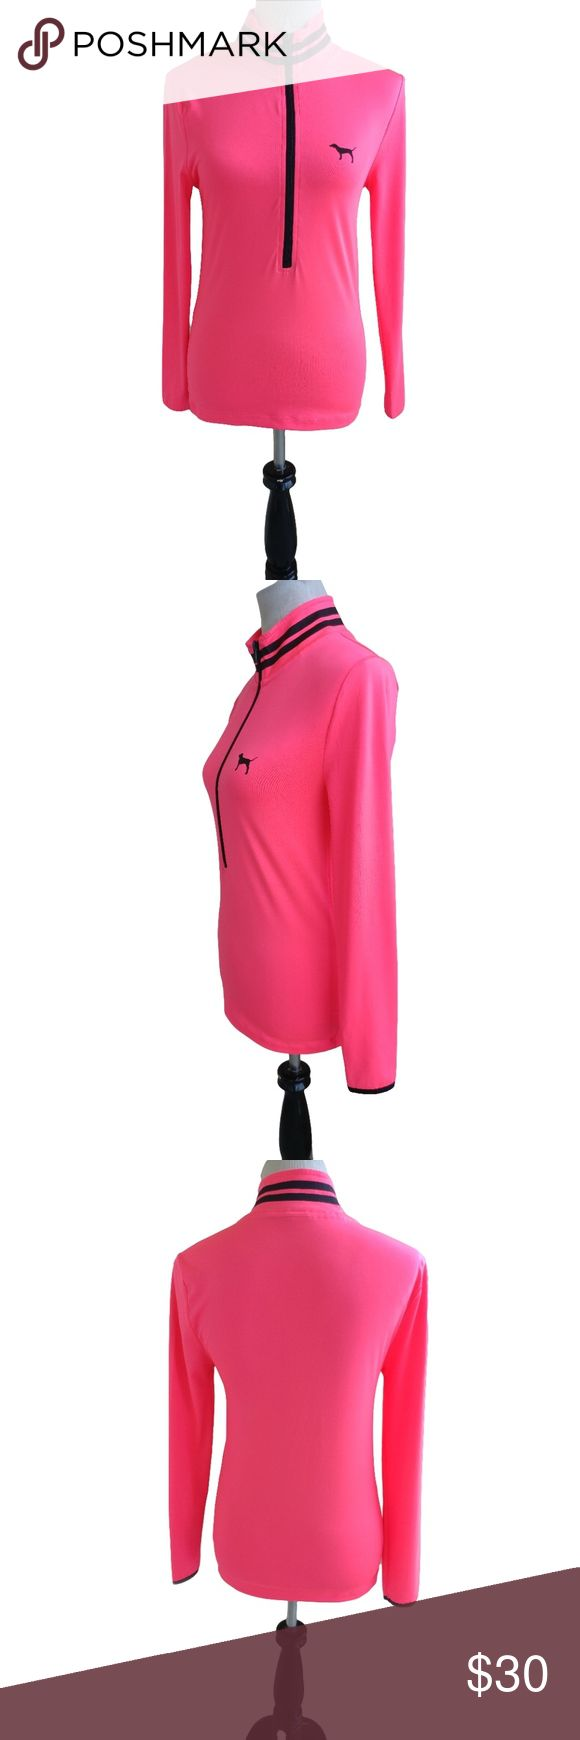 """Victoria's Secret PINK Jacket Size S Hot Pink Victoria's Secret PINK Jacket Size S Hot Pink Black Zip Up  Women's Pullover  Size:S Color:Pink, Black Style Type:Pullover; Jacket Care:Machine washable Fabric:90% Polyester; 10% Elastane Measurements:Length 24.5""""; Pit-to-Pit 16""""; Waist 31"""" More Information:Pullover style. Mock neck. Partial zip front. Black logo on left chest. Hits below hips. Has some stretch. In excellent condition- no stains, snags, or tears noted! From a pet & smoke…"""